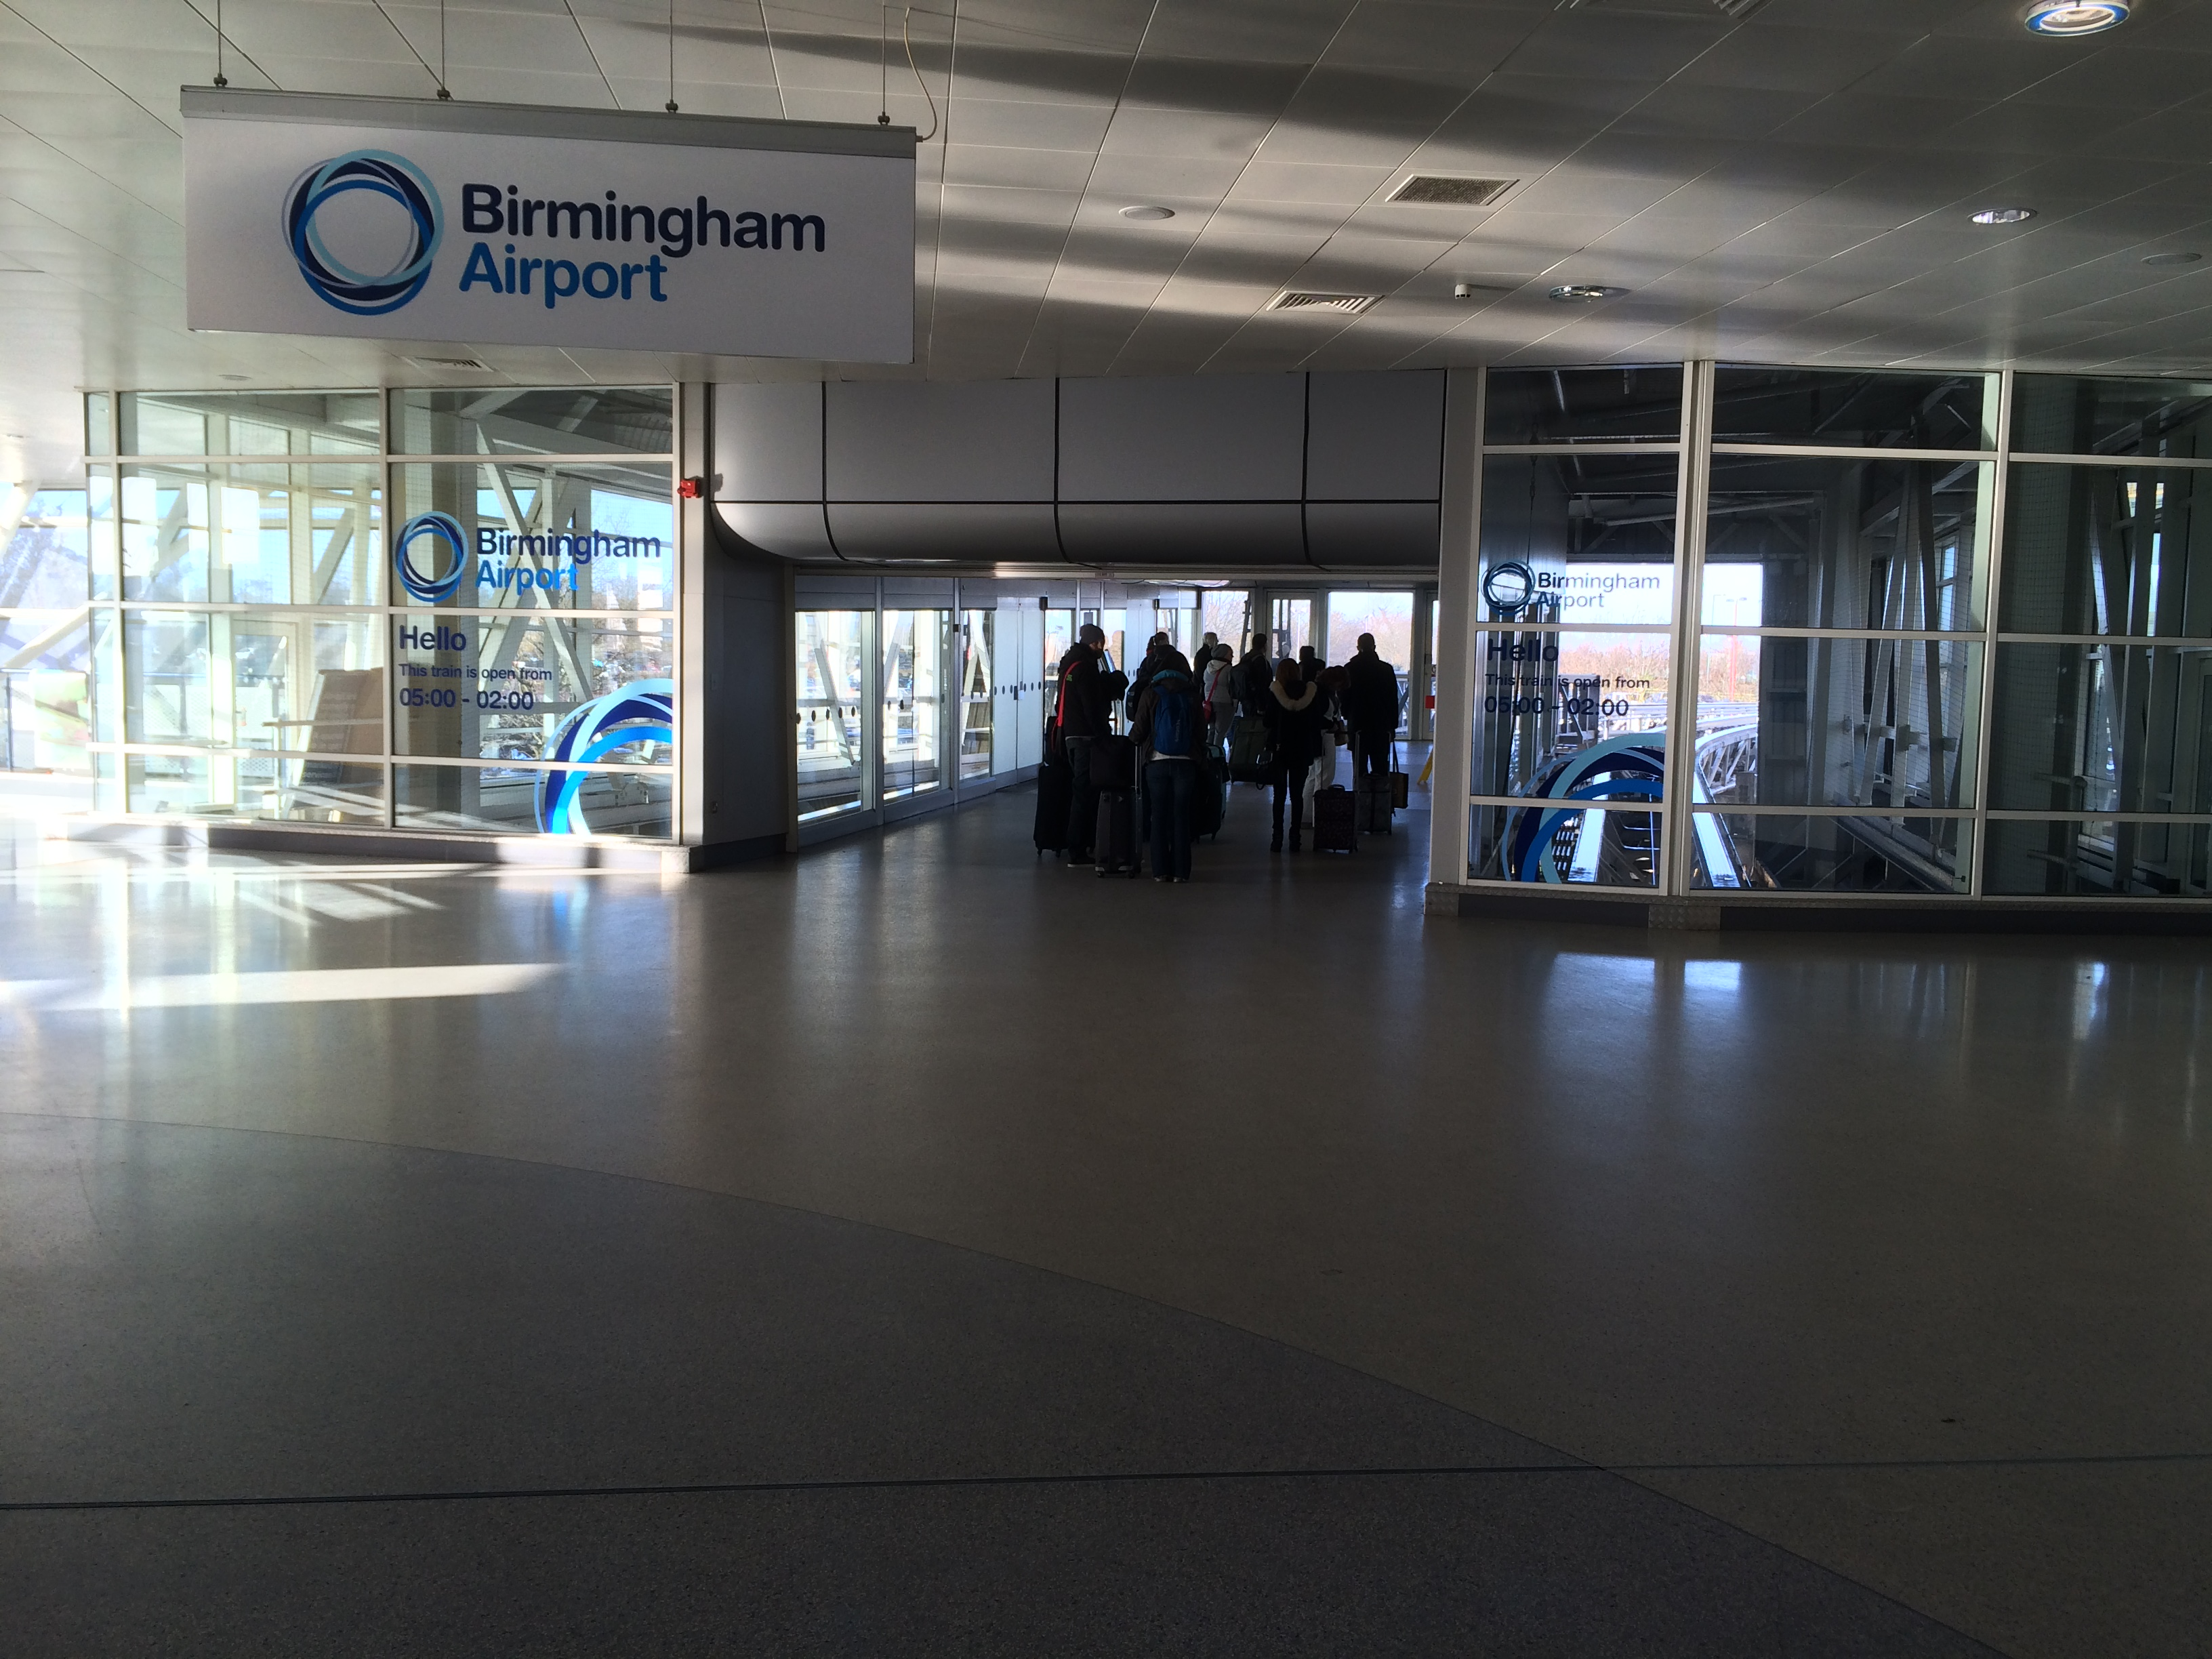 how to get to birmingham airport from london